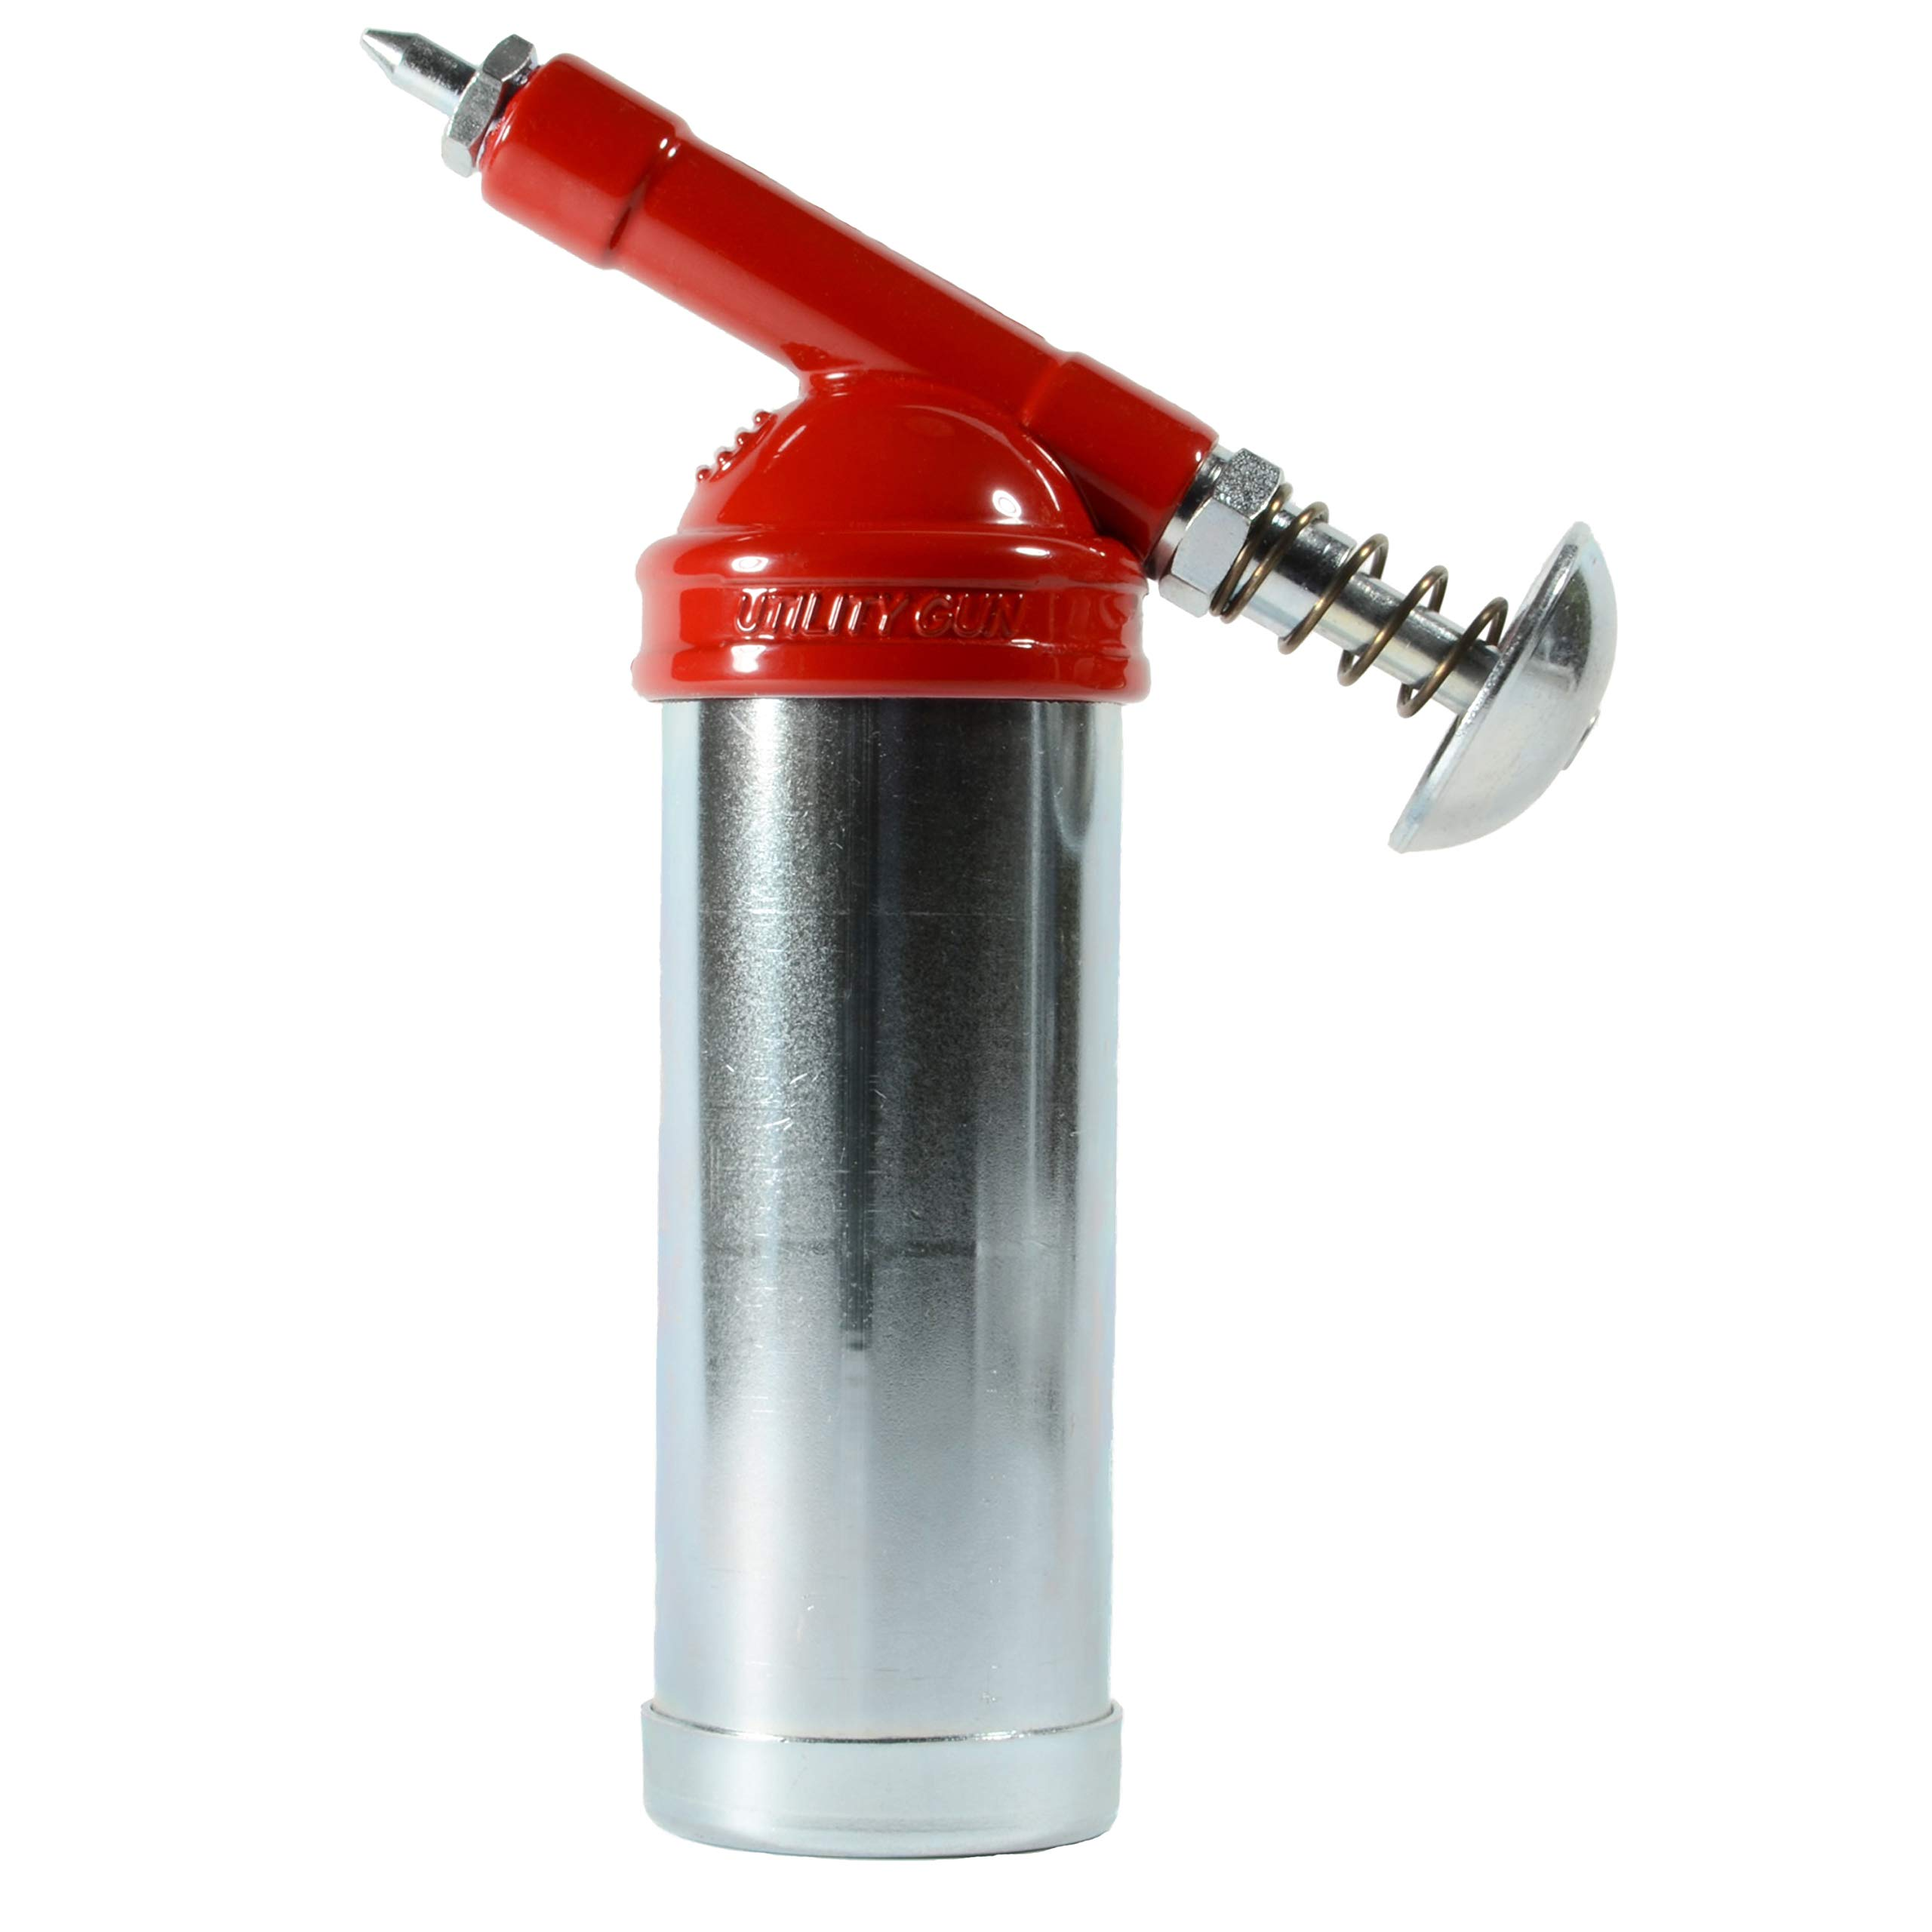 Dualco Grease Gun with Short Nozzle